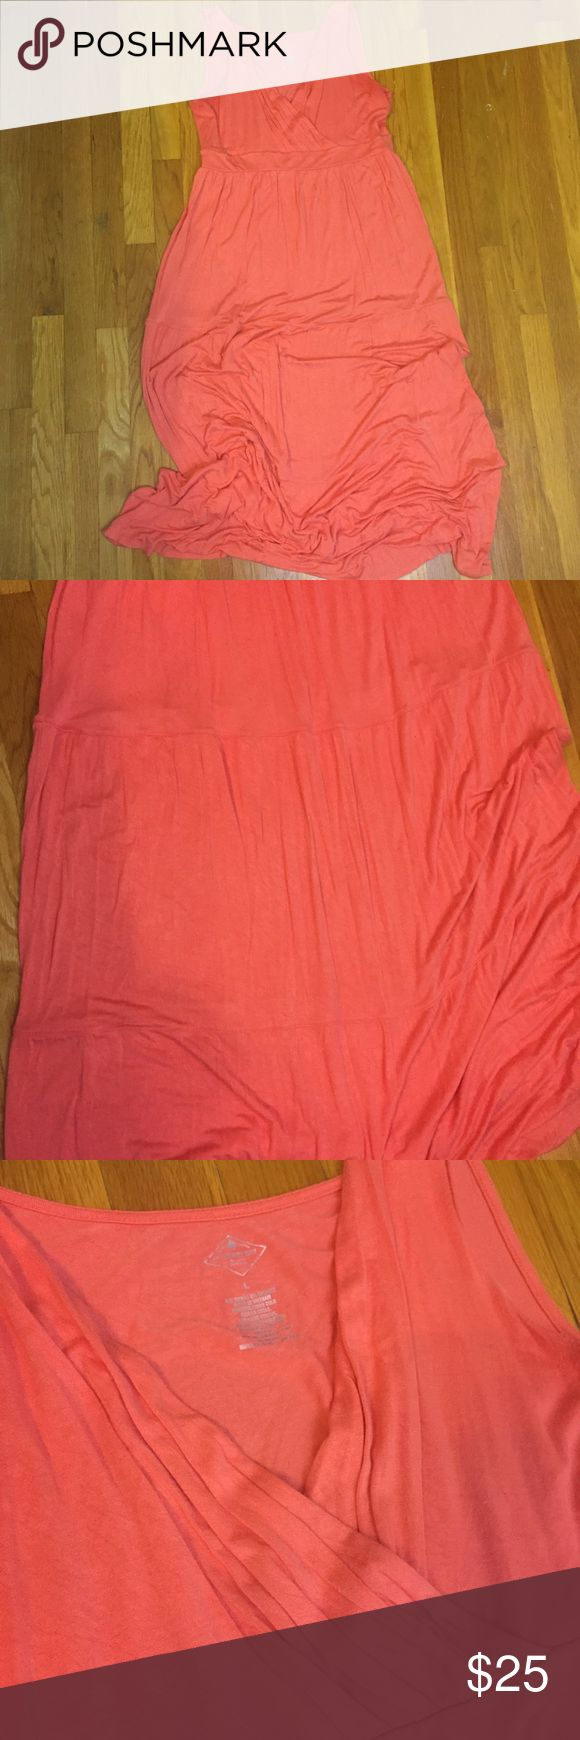 Coral Maxi Dress St. John's Bay Perfect beachy colored maxi dress. Great for vacation! Dress it up with a fun necklace or wear it as a swimsuit coverup! St. John's Bay. EUC. St. John's Bay Dresses Maxi